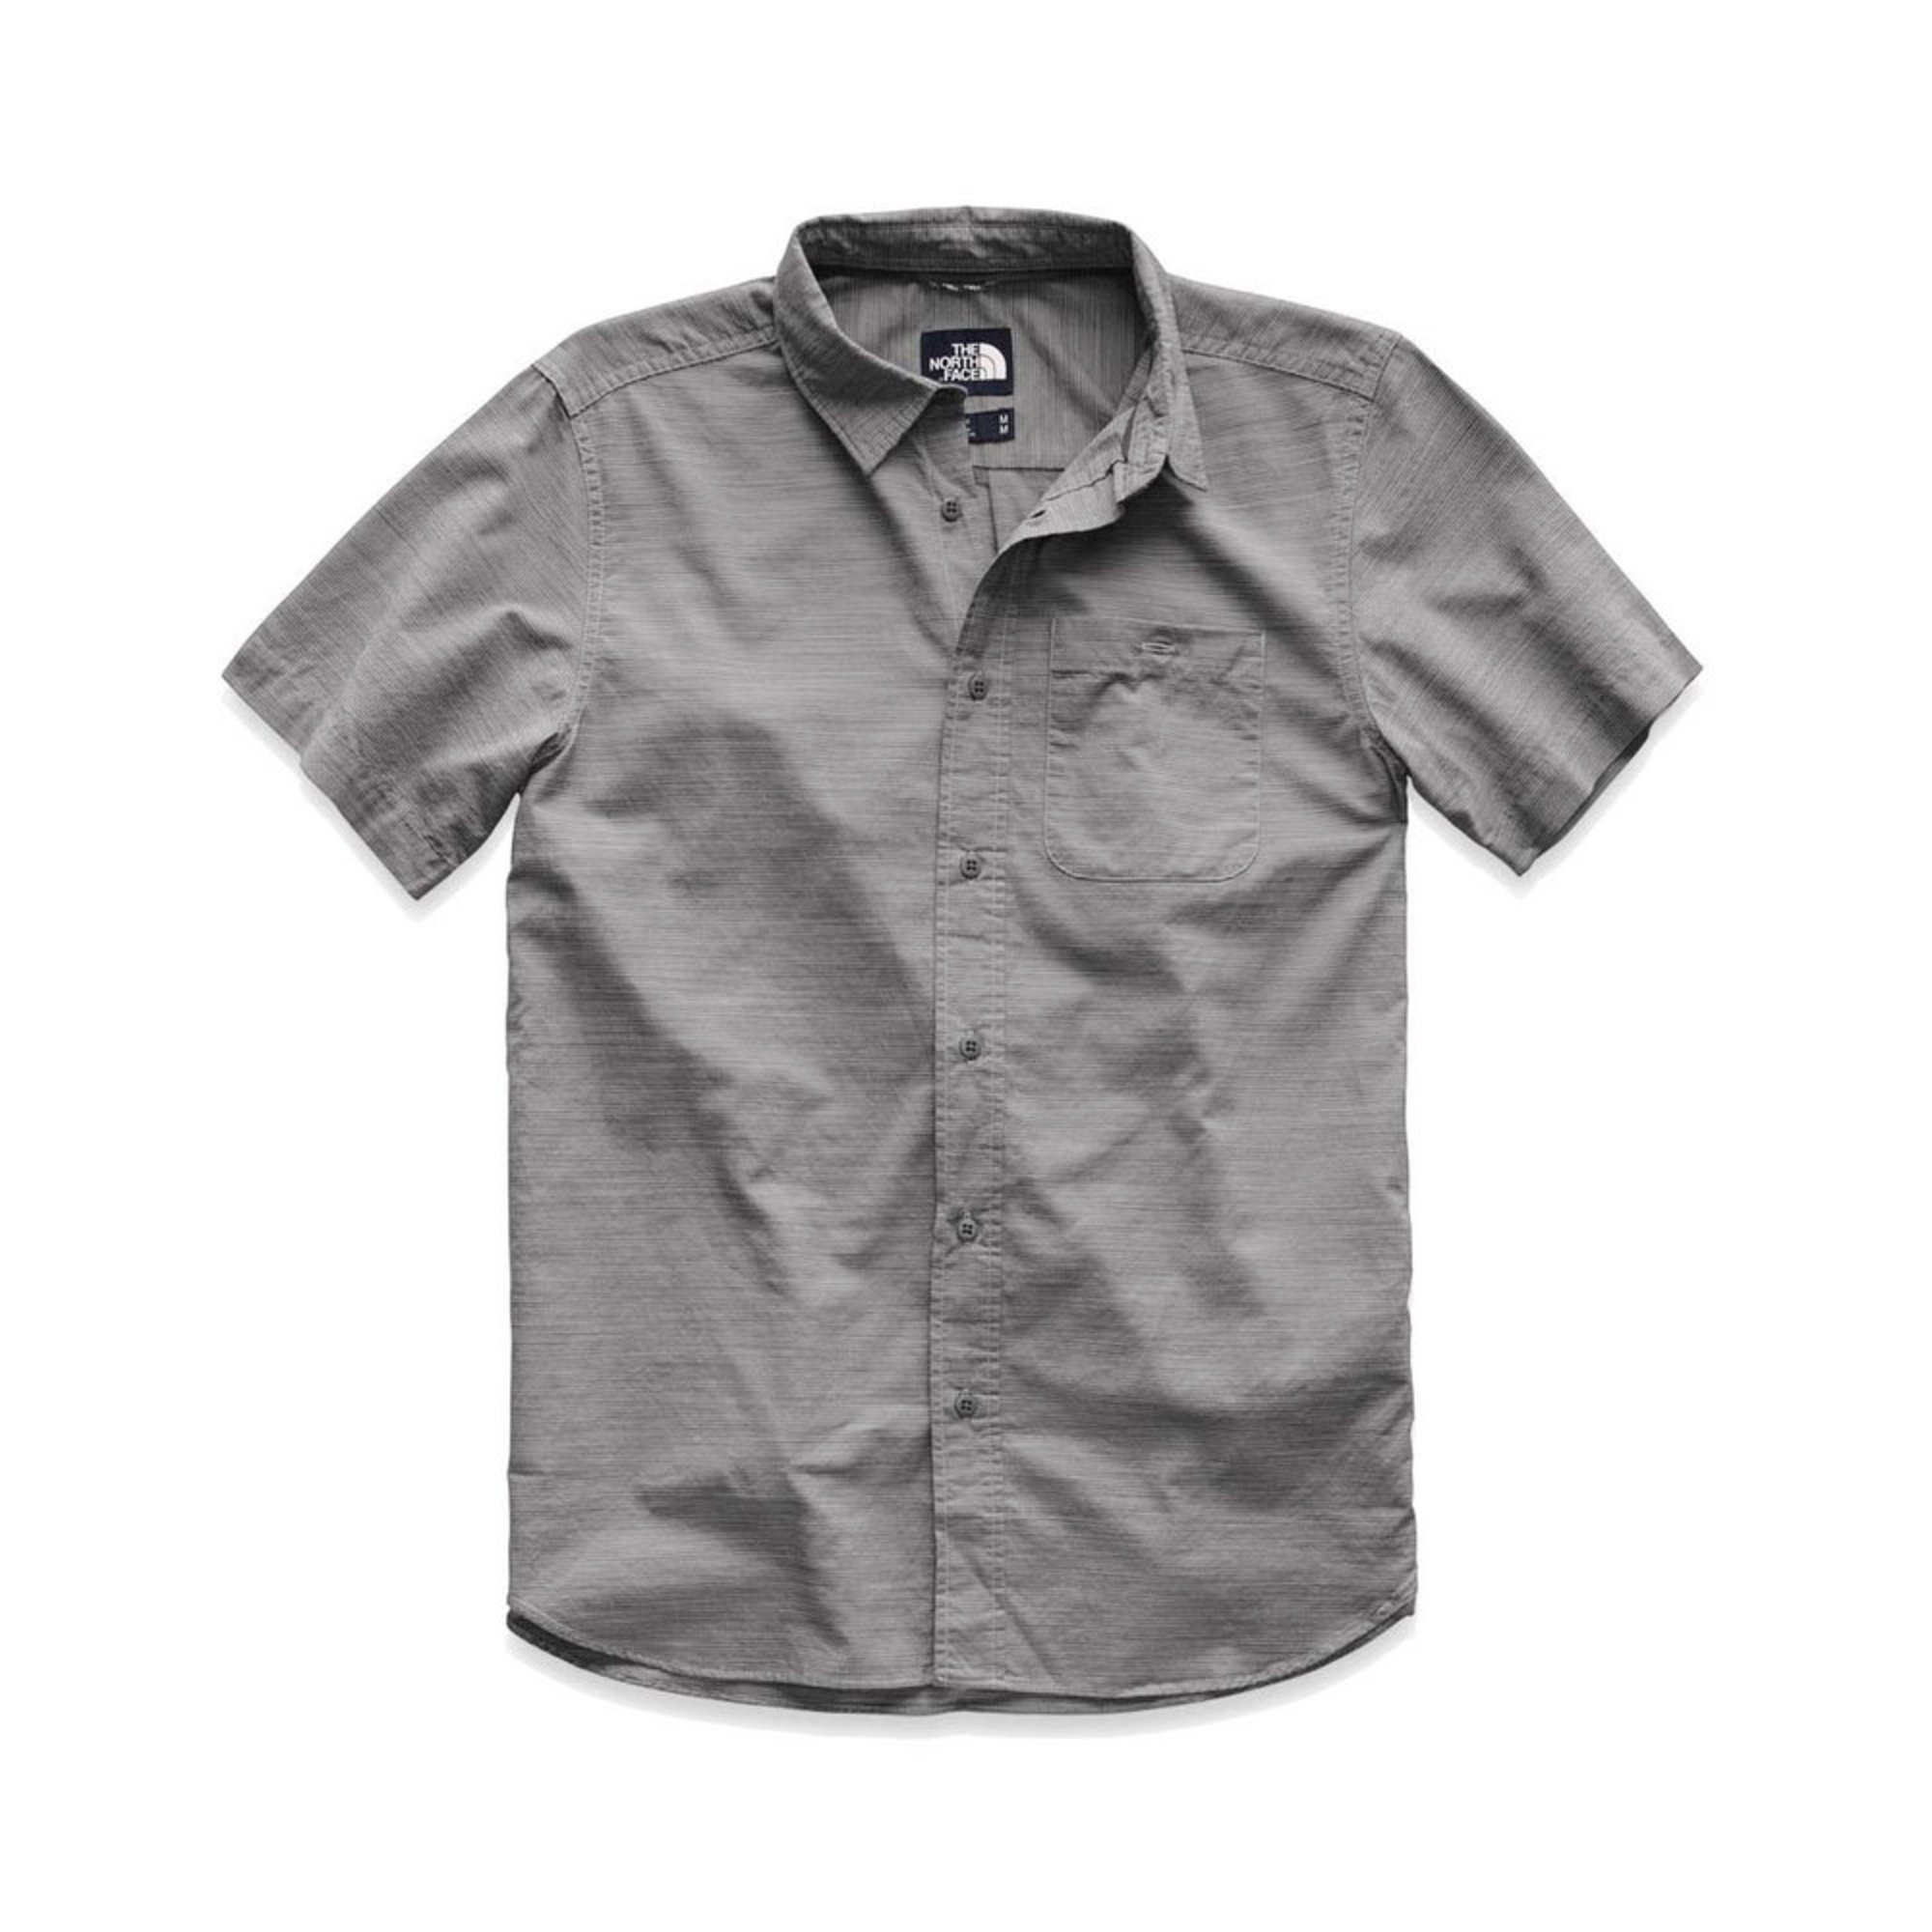 12fae75bc The North Face Men's Buttonwood Shirt | Outdoor Button Down Shirts ...